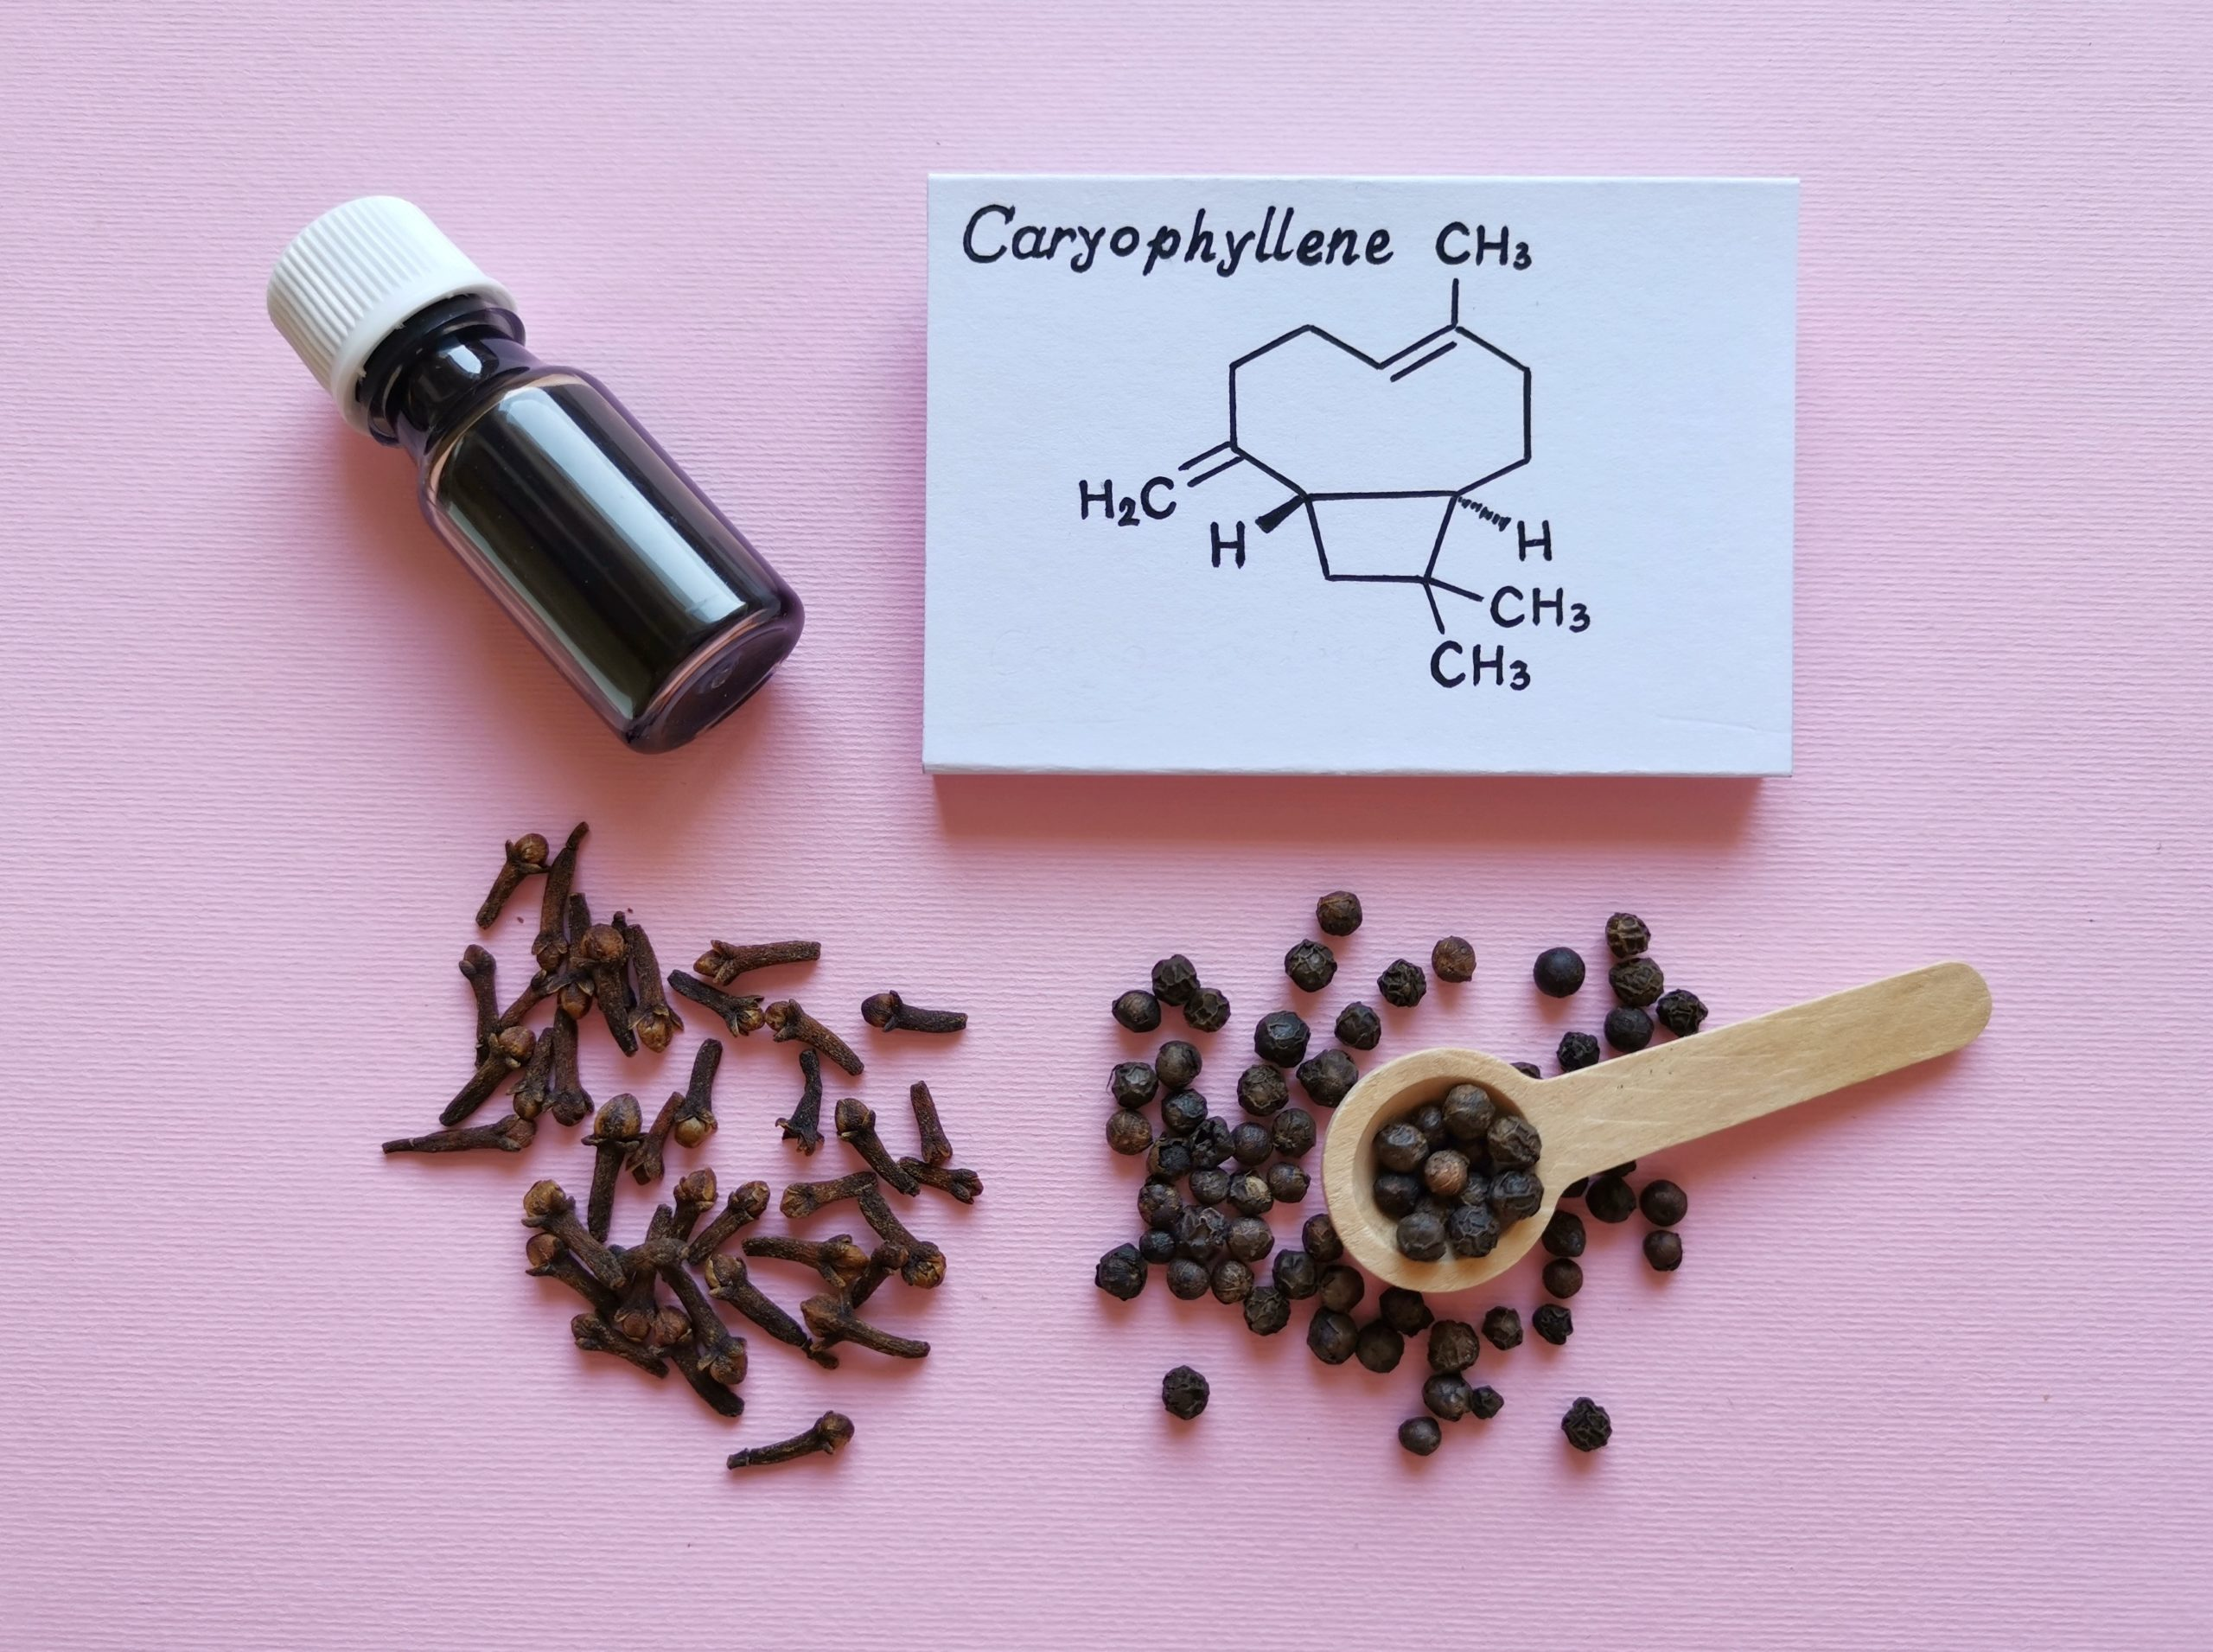 What are the best terpenes? This common question is asked by many cannabis consumers. Caryophyllene, a common terpene, is pictured with cloves and essential oils